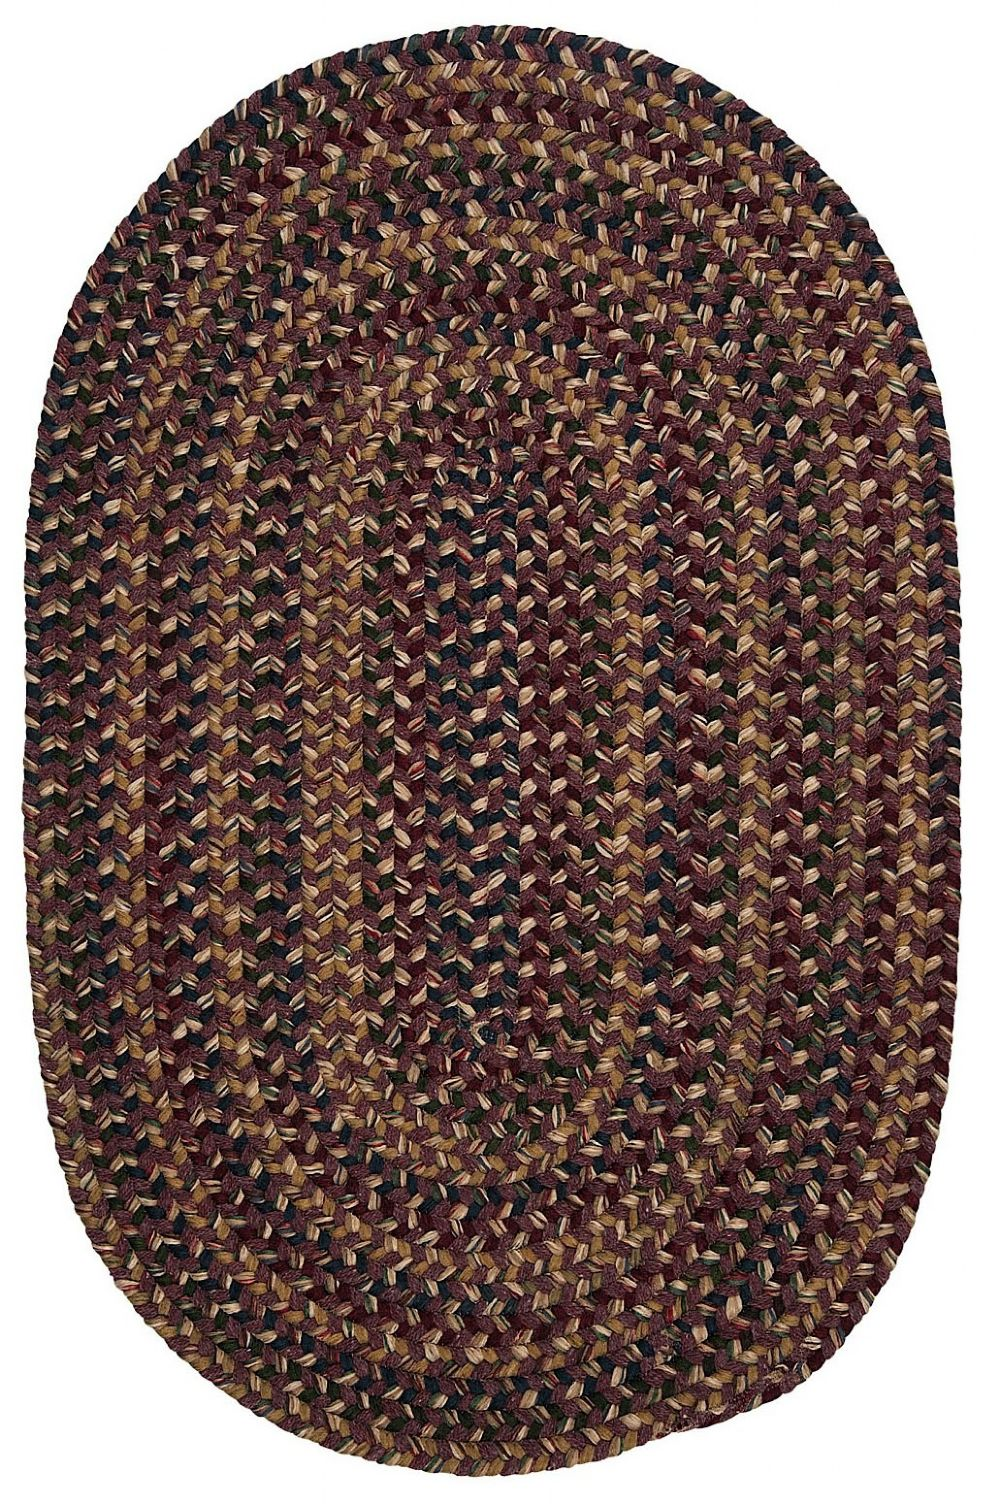 colonial mills twilight braided area rug collection